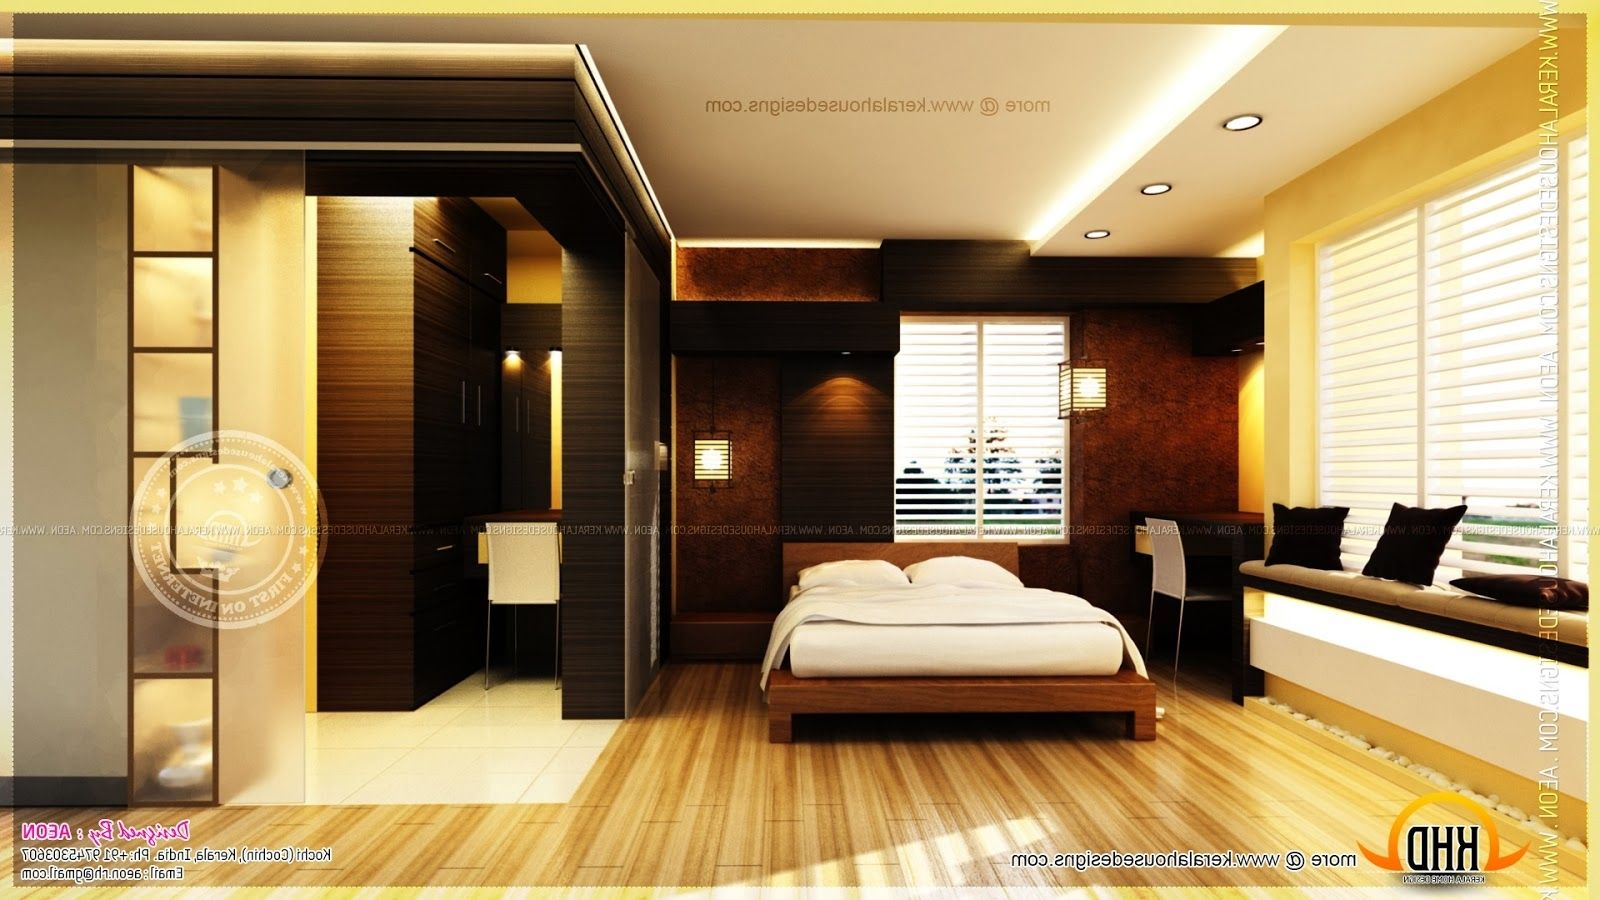 Bedroom Designs With Attached Bathroom And Dressing Room bedroom with bathroom and dressing room design ideas | home design